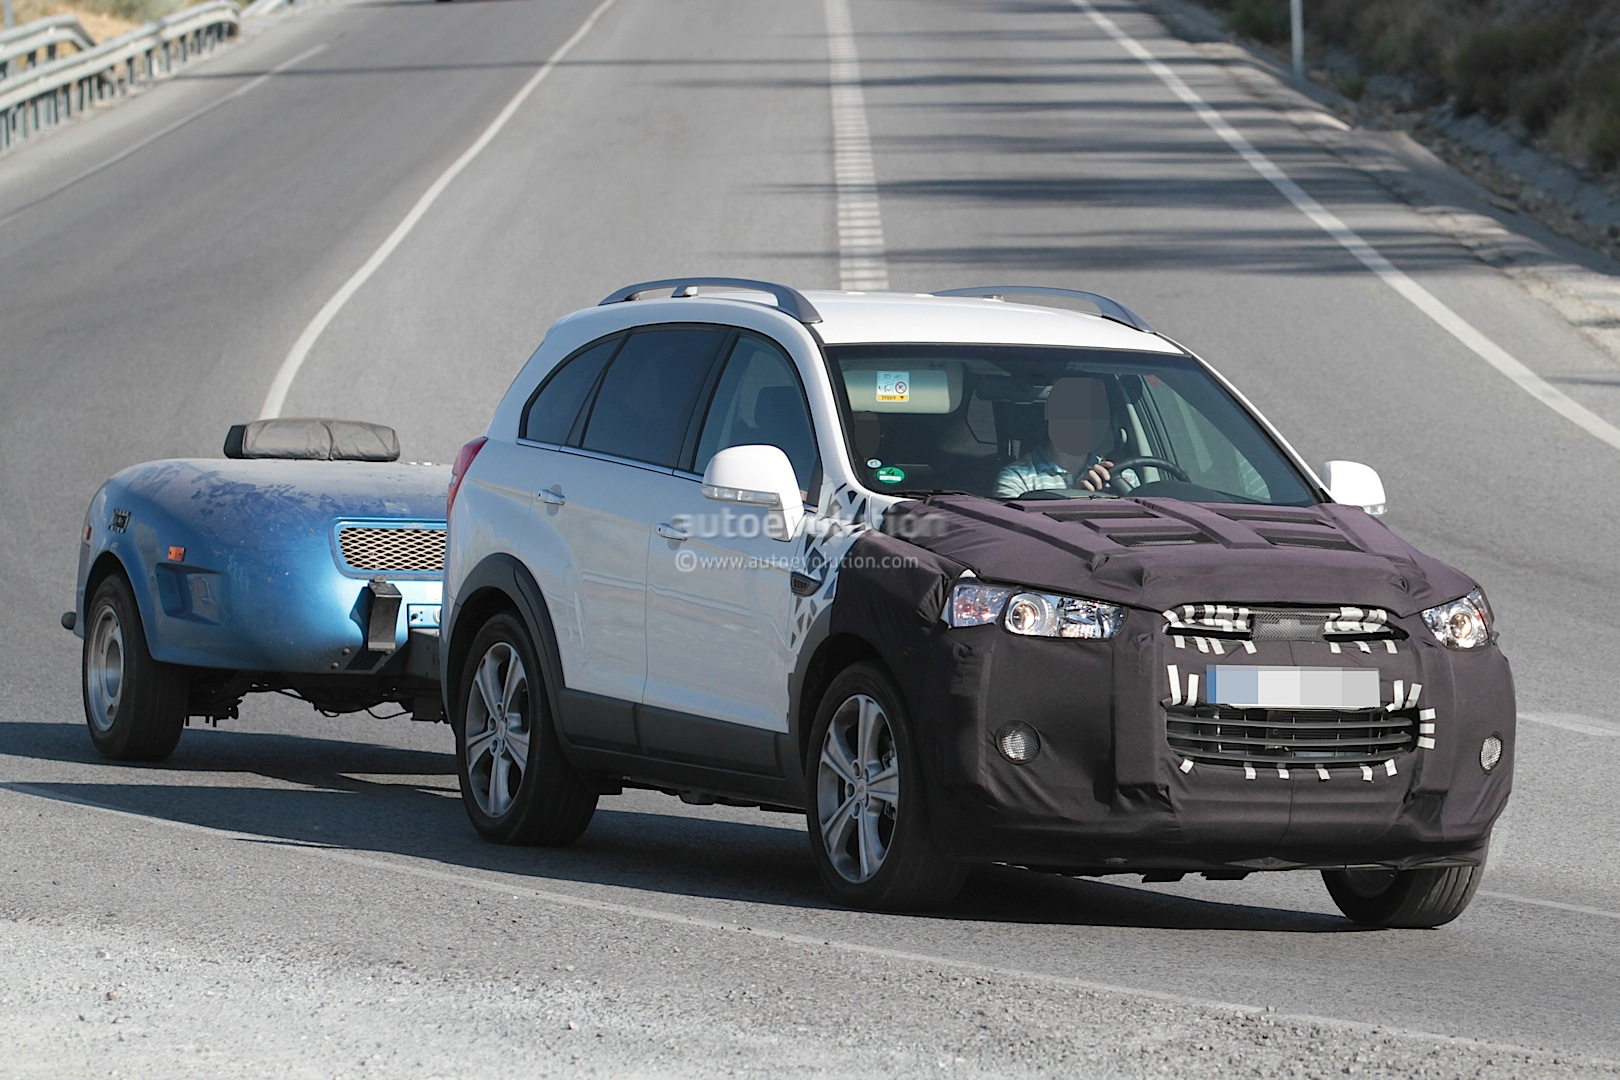 2015 chevrolet captiva opel antara facelift spied autoevolution. Black Bedroom Furniture Sets. Home Design Ideas